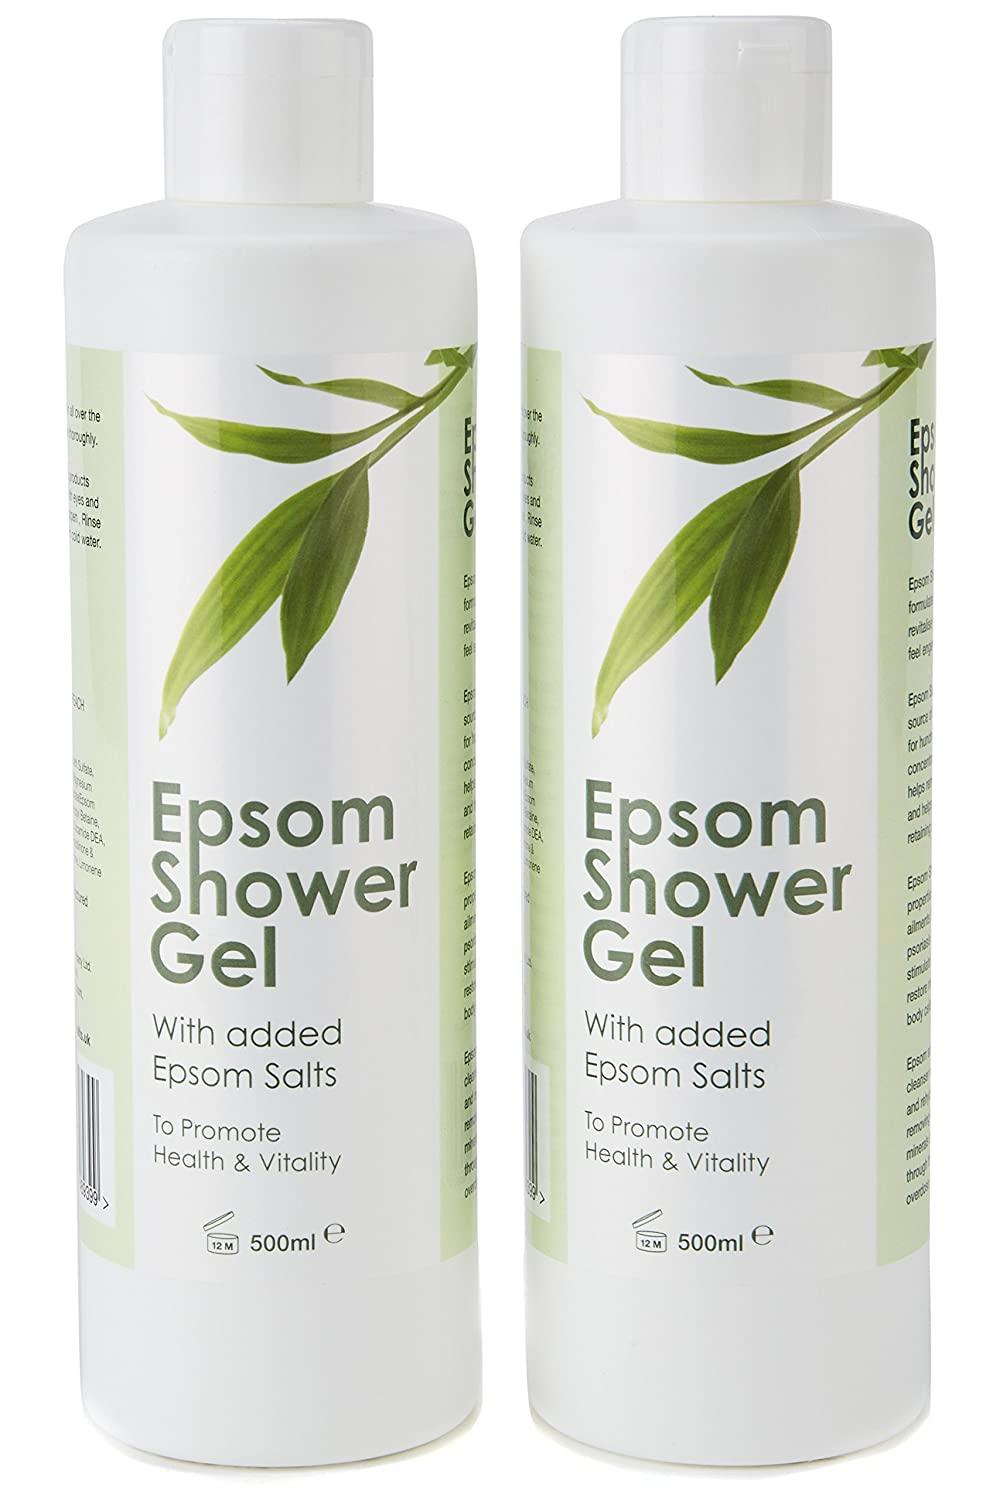 2 x Epsom Shower Gel - Free Next Day Delivery Epsom Salts Co.